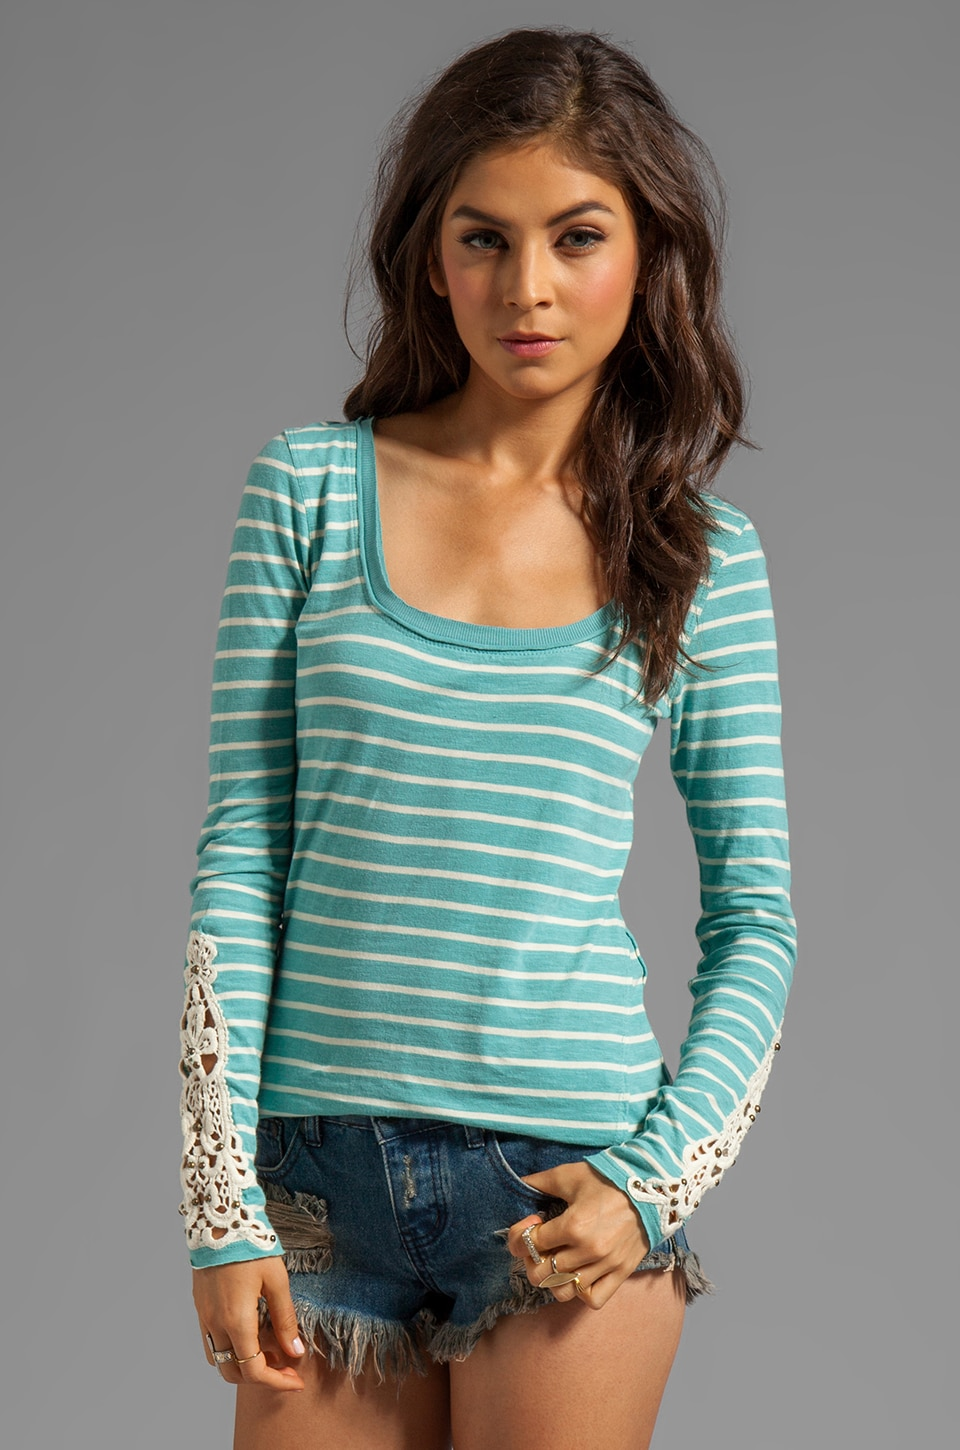 Free People Hard Candy Cuff Top in Blue Combo